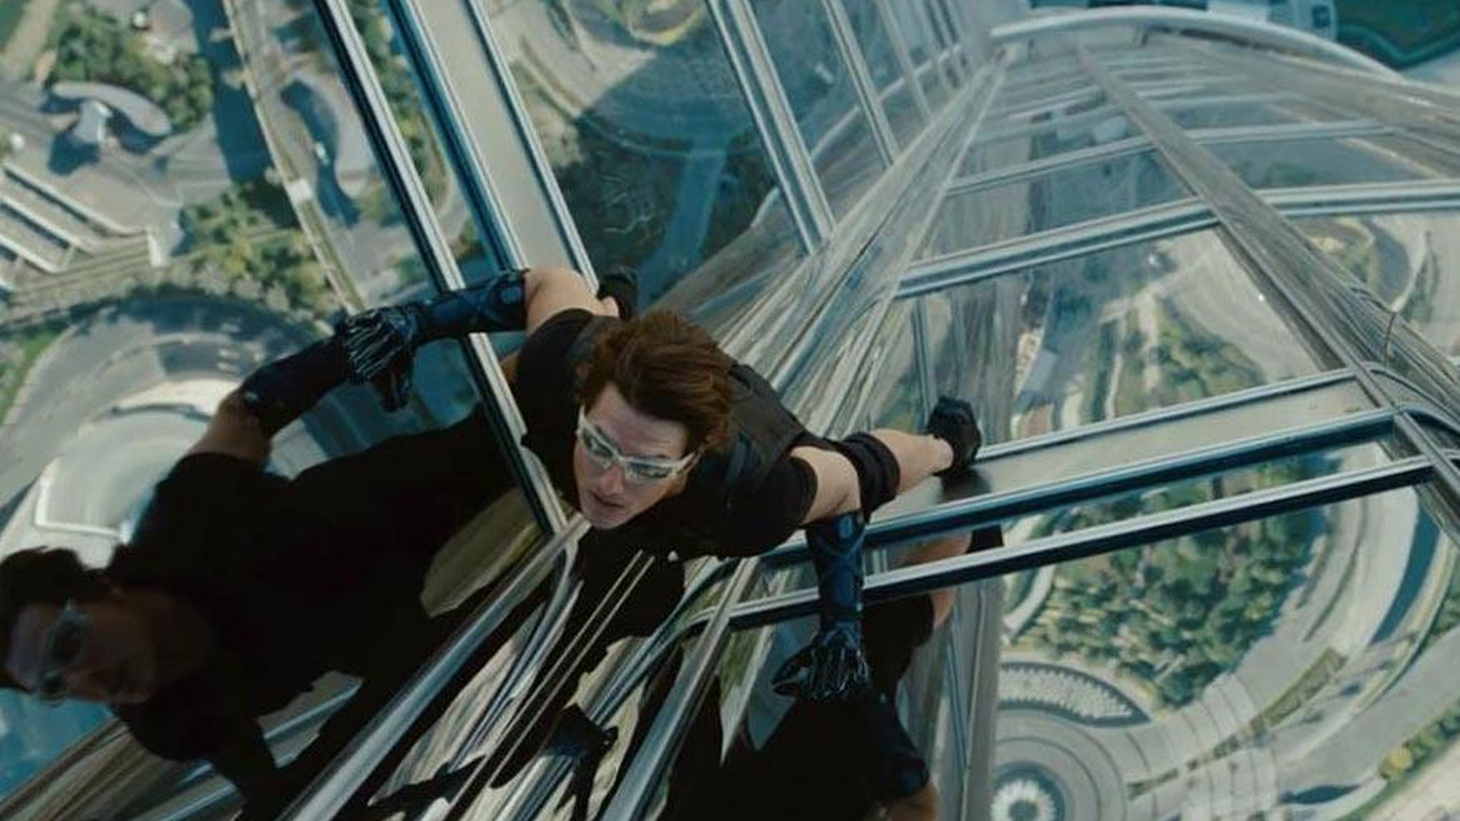 """Joe Morgenstern on the latest installment of Mission Impossible with its """"impossibly magical gadgets and gizmos"""" and a schizoid attitude toward technology that..."""